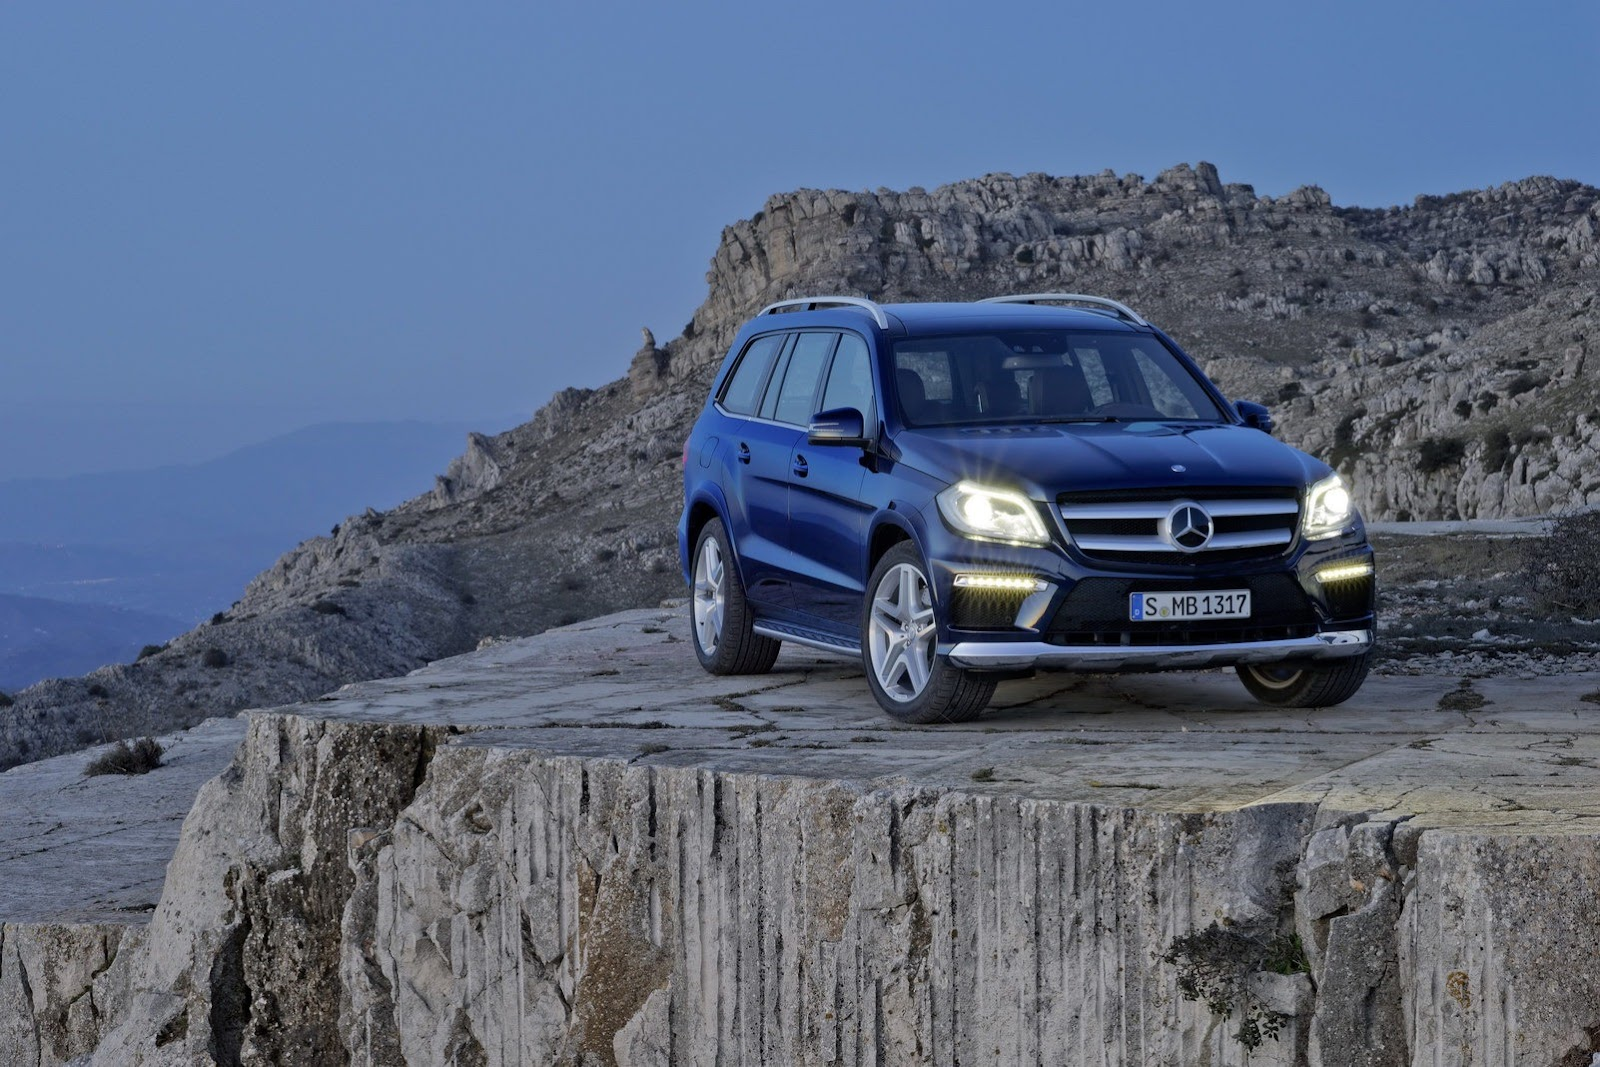 Cars news mercedes benz confirms uk pricing for new gl for Mercedes benz gl class suv price